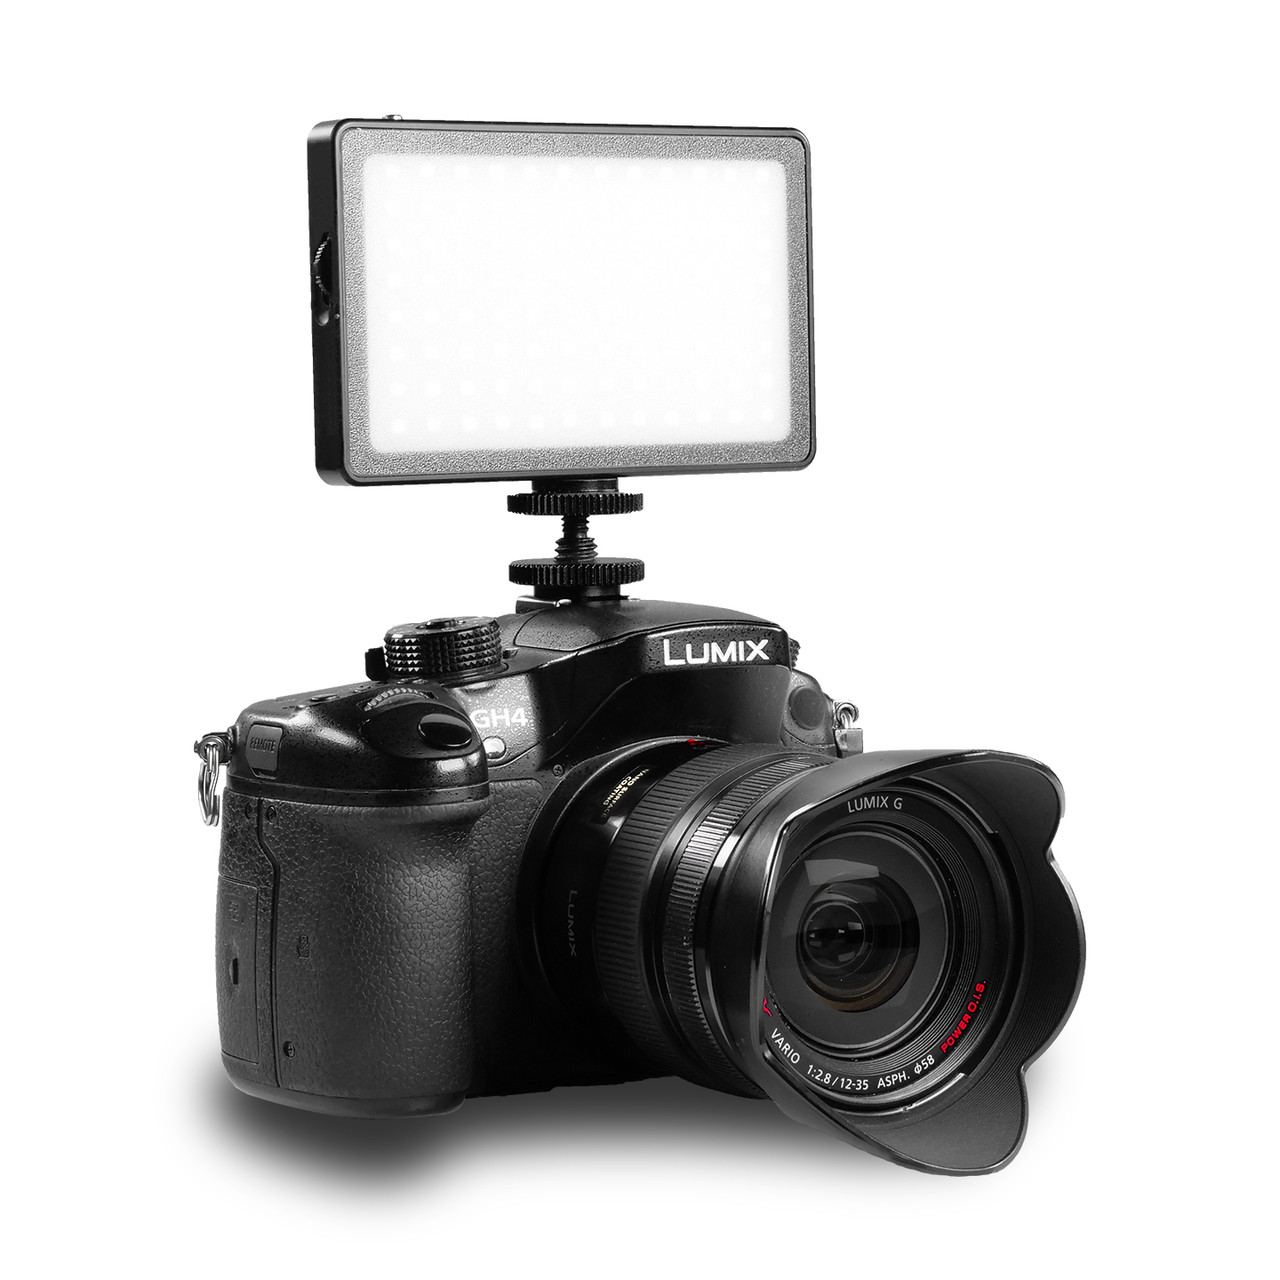 FloBeam Pocket Light 12W BiColor on Mirrorless Camera